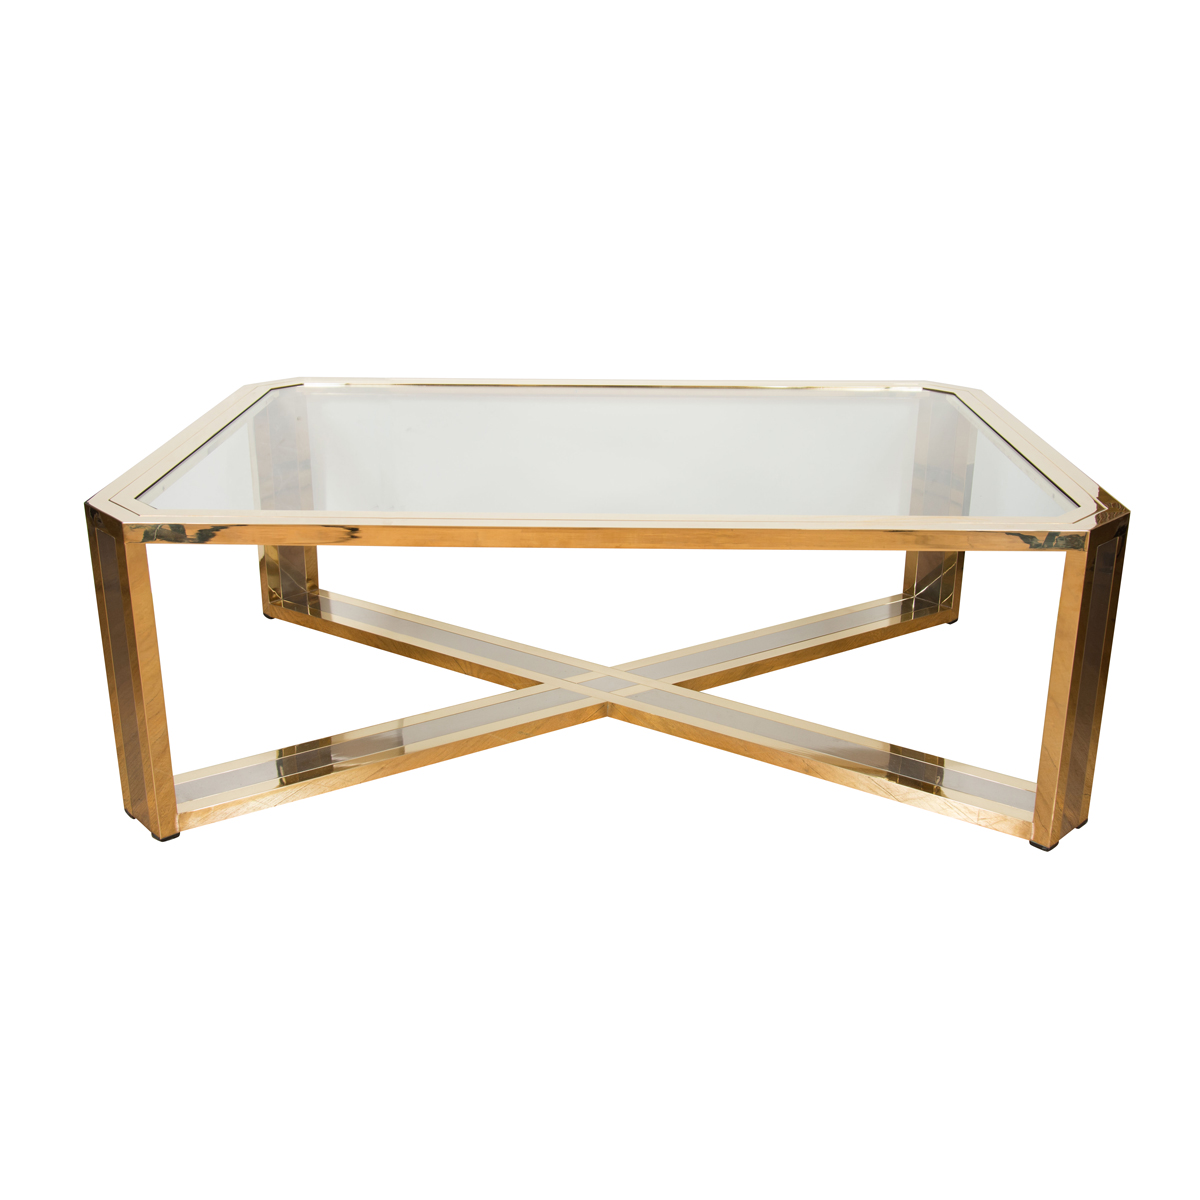 Octagonal coffee table coffee tables john salibello for Octagon coffee table